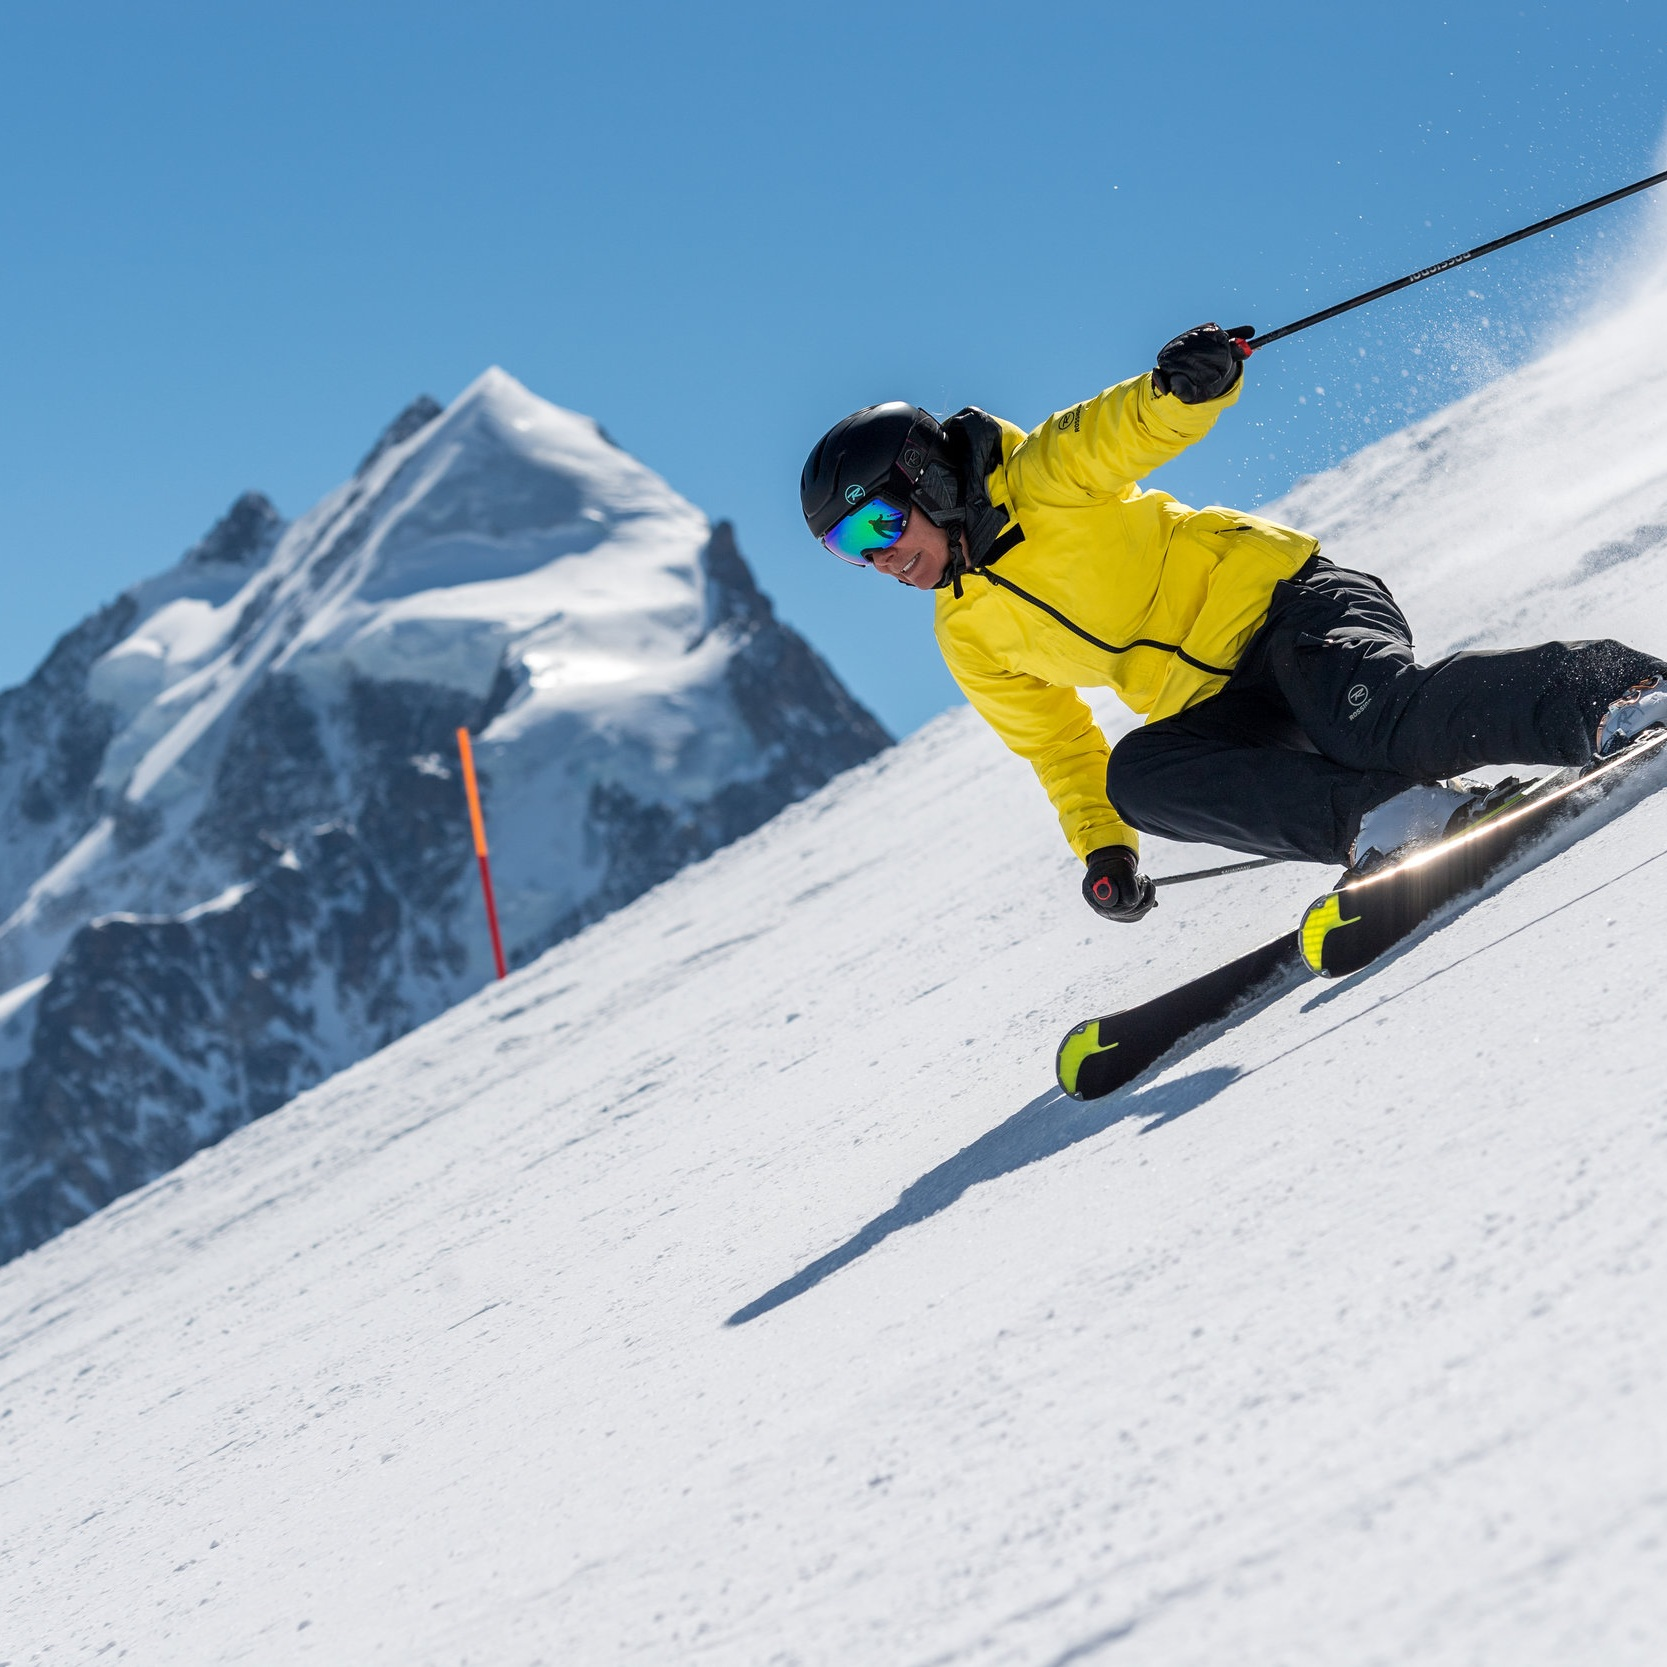 Pursuit_Corvatsch_RG5_5751.jpg